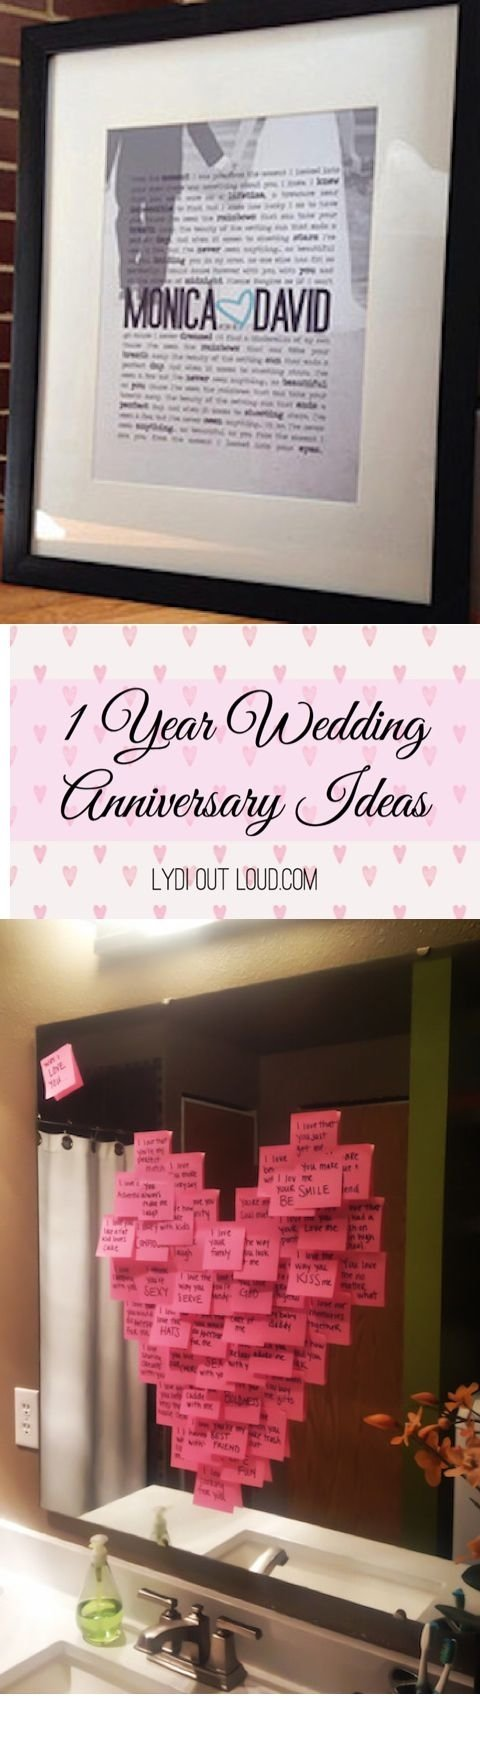 10 Beautiful Two Year Anniversary Gift Ideas best 2 year wedding anniversary gifts for him contemporary styles 2 2020